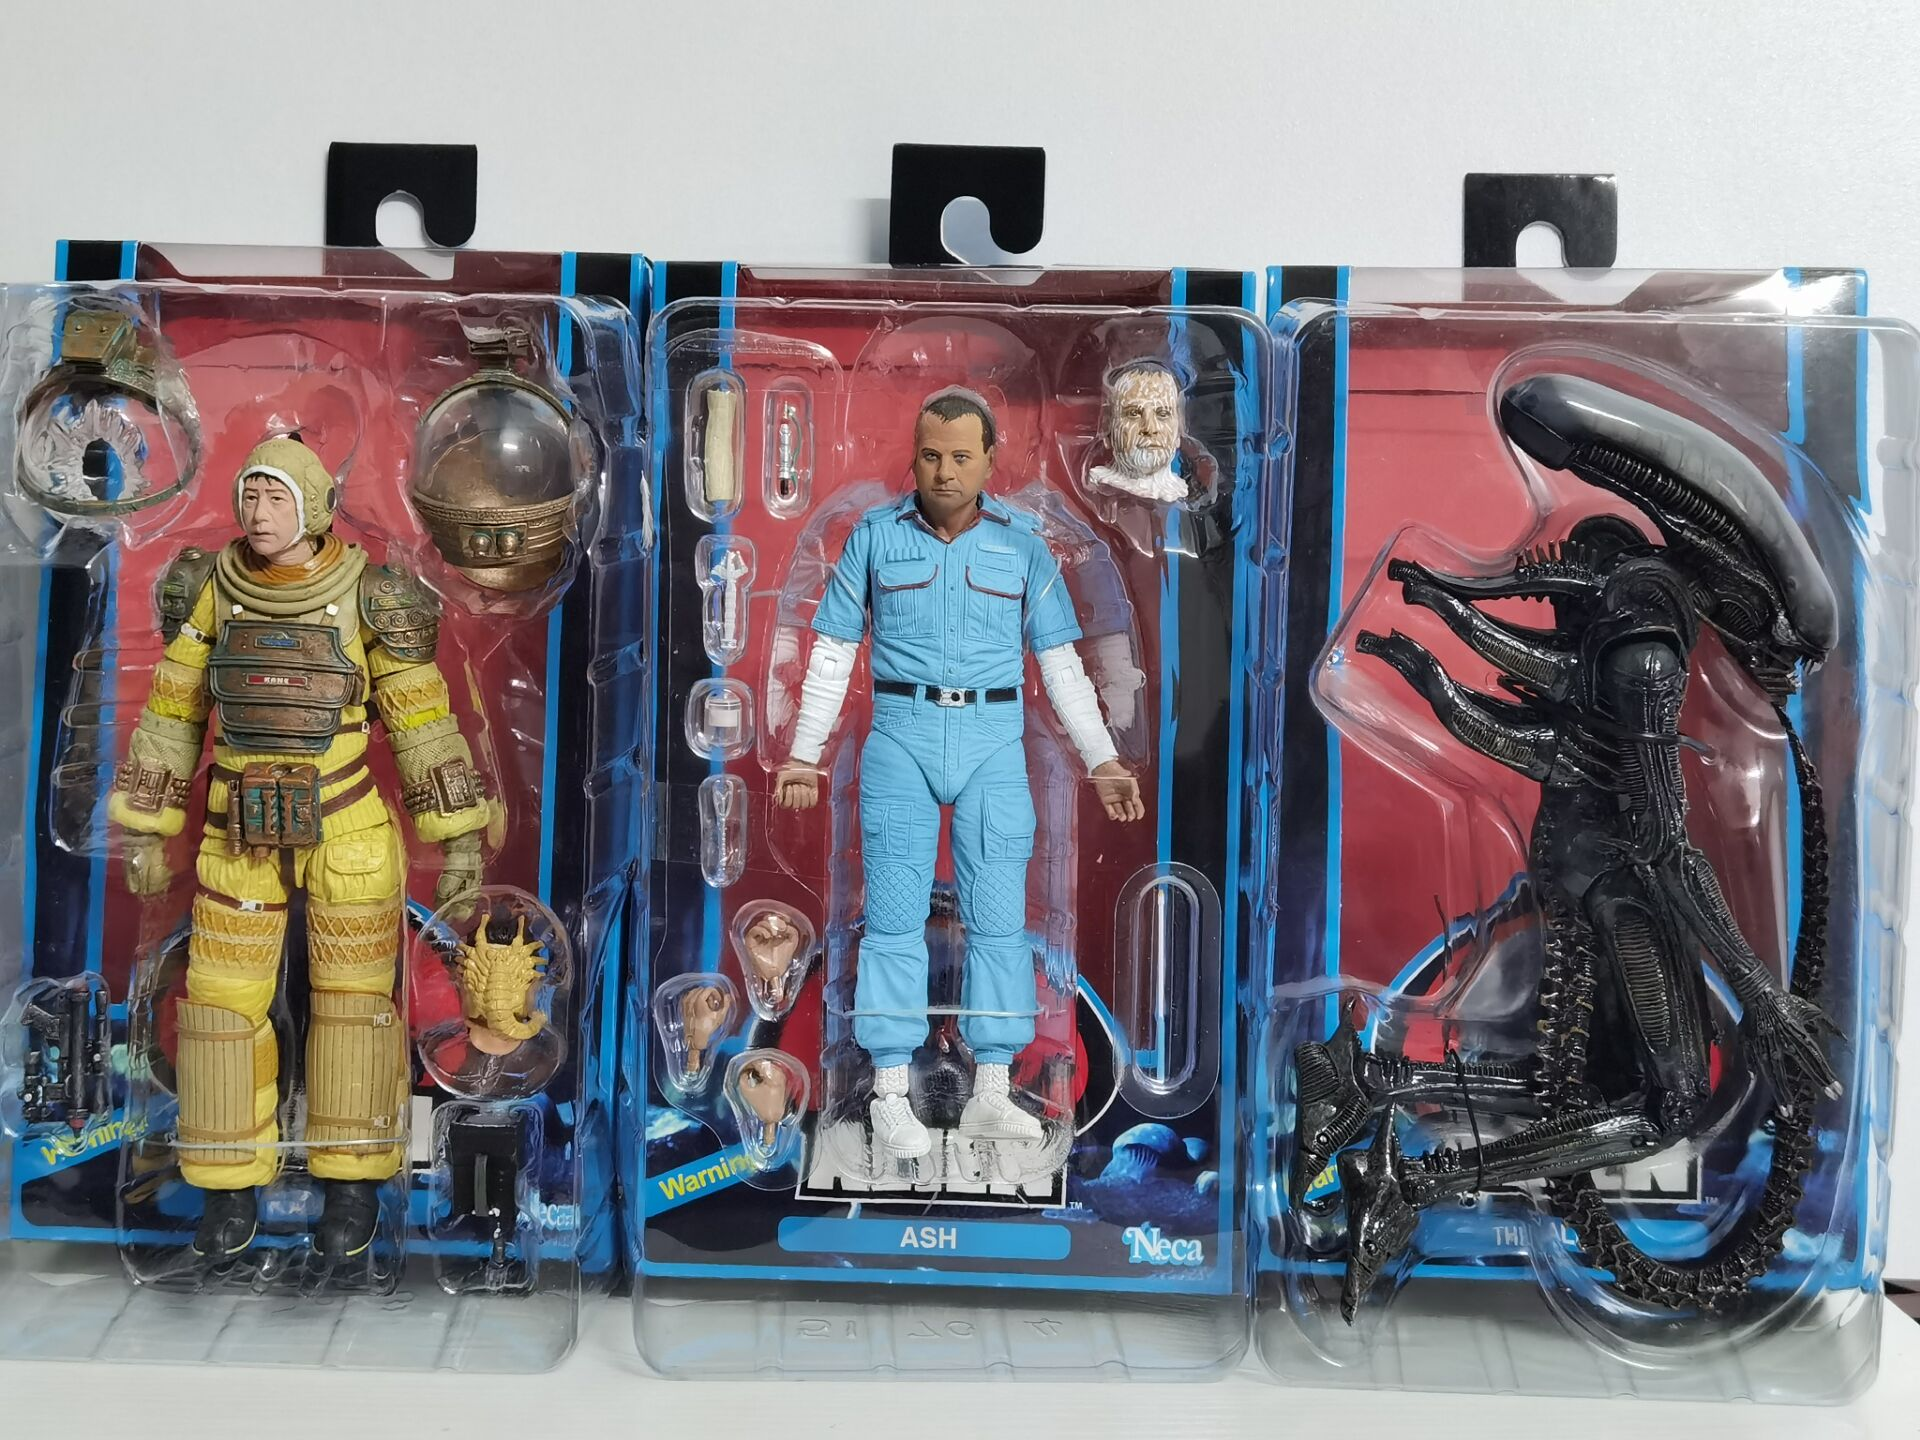 3 pz/set 18cm NECA Alien Kane Ash Figure sanguinante Brett Parker Action Figures 40 ° anniversario modello Toy Doll regalo